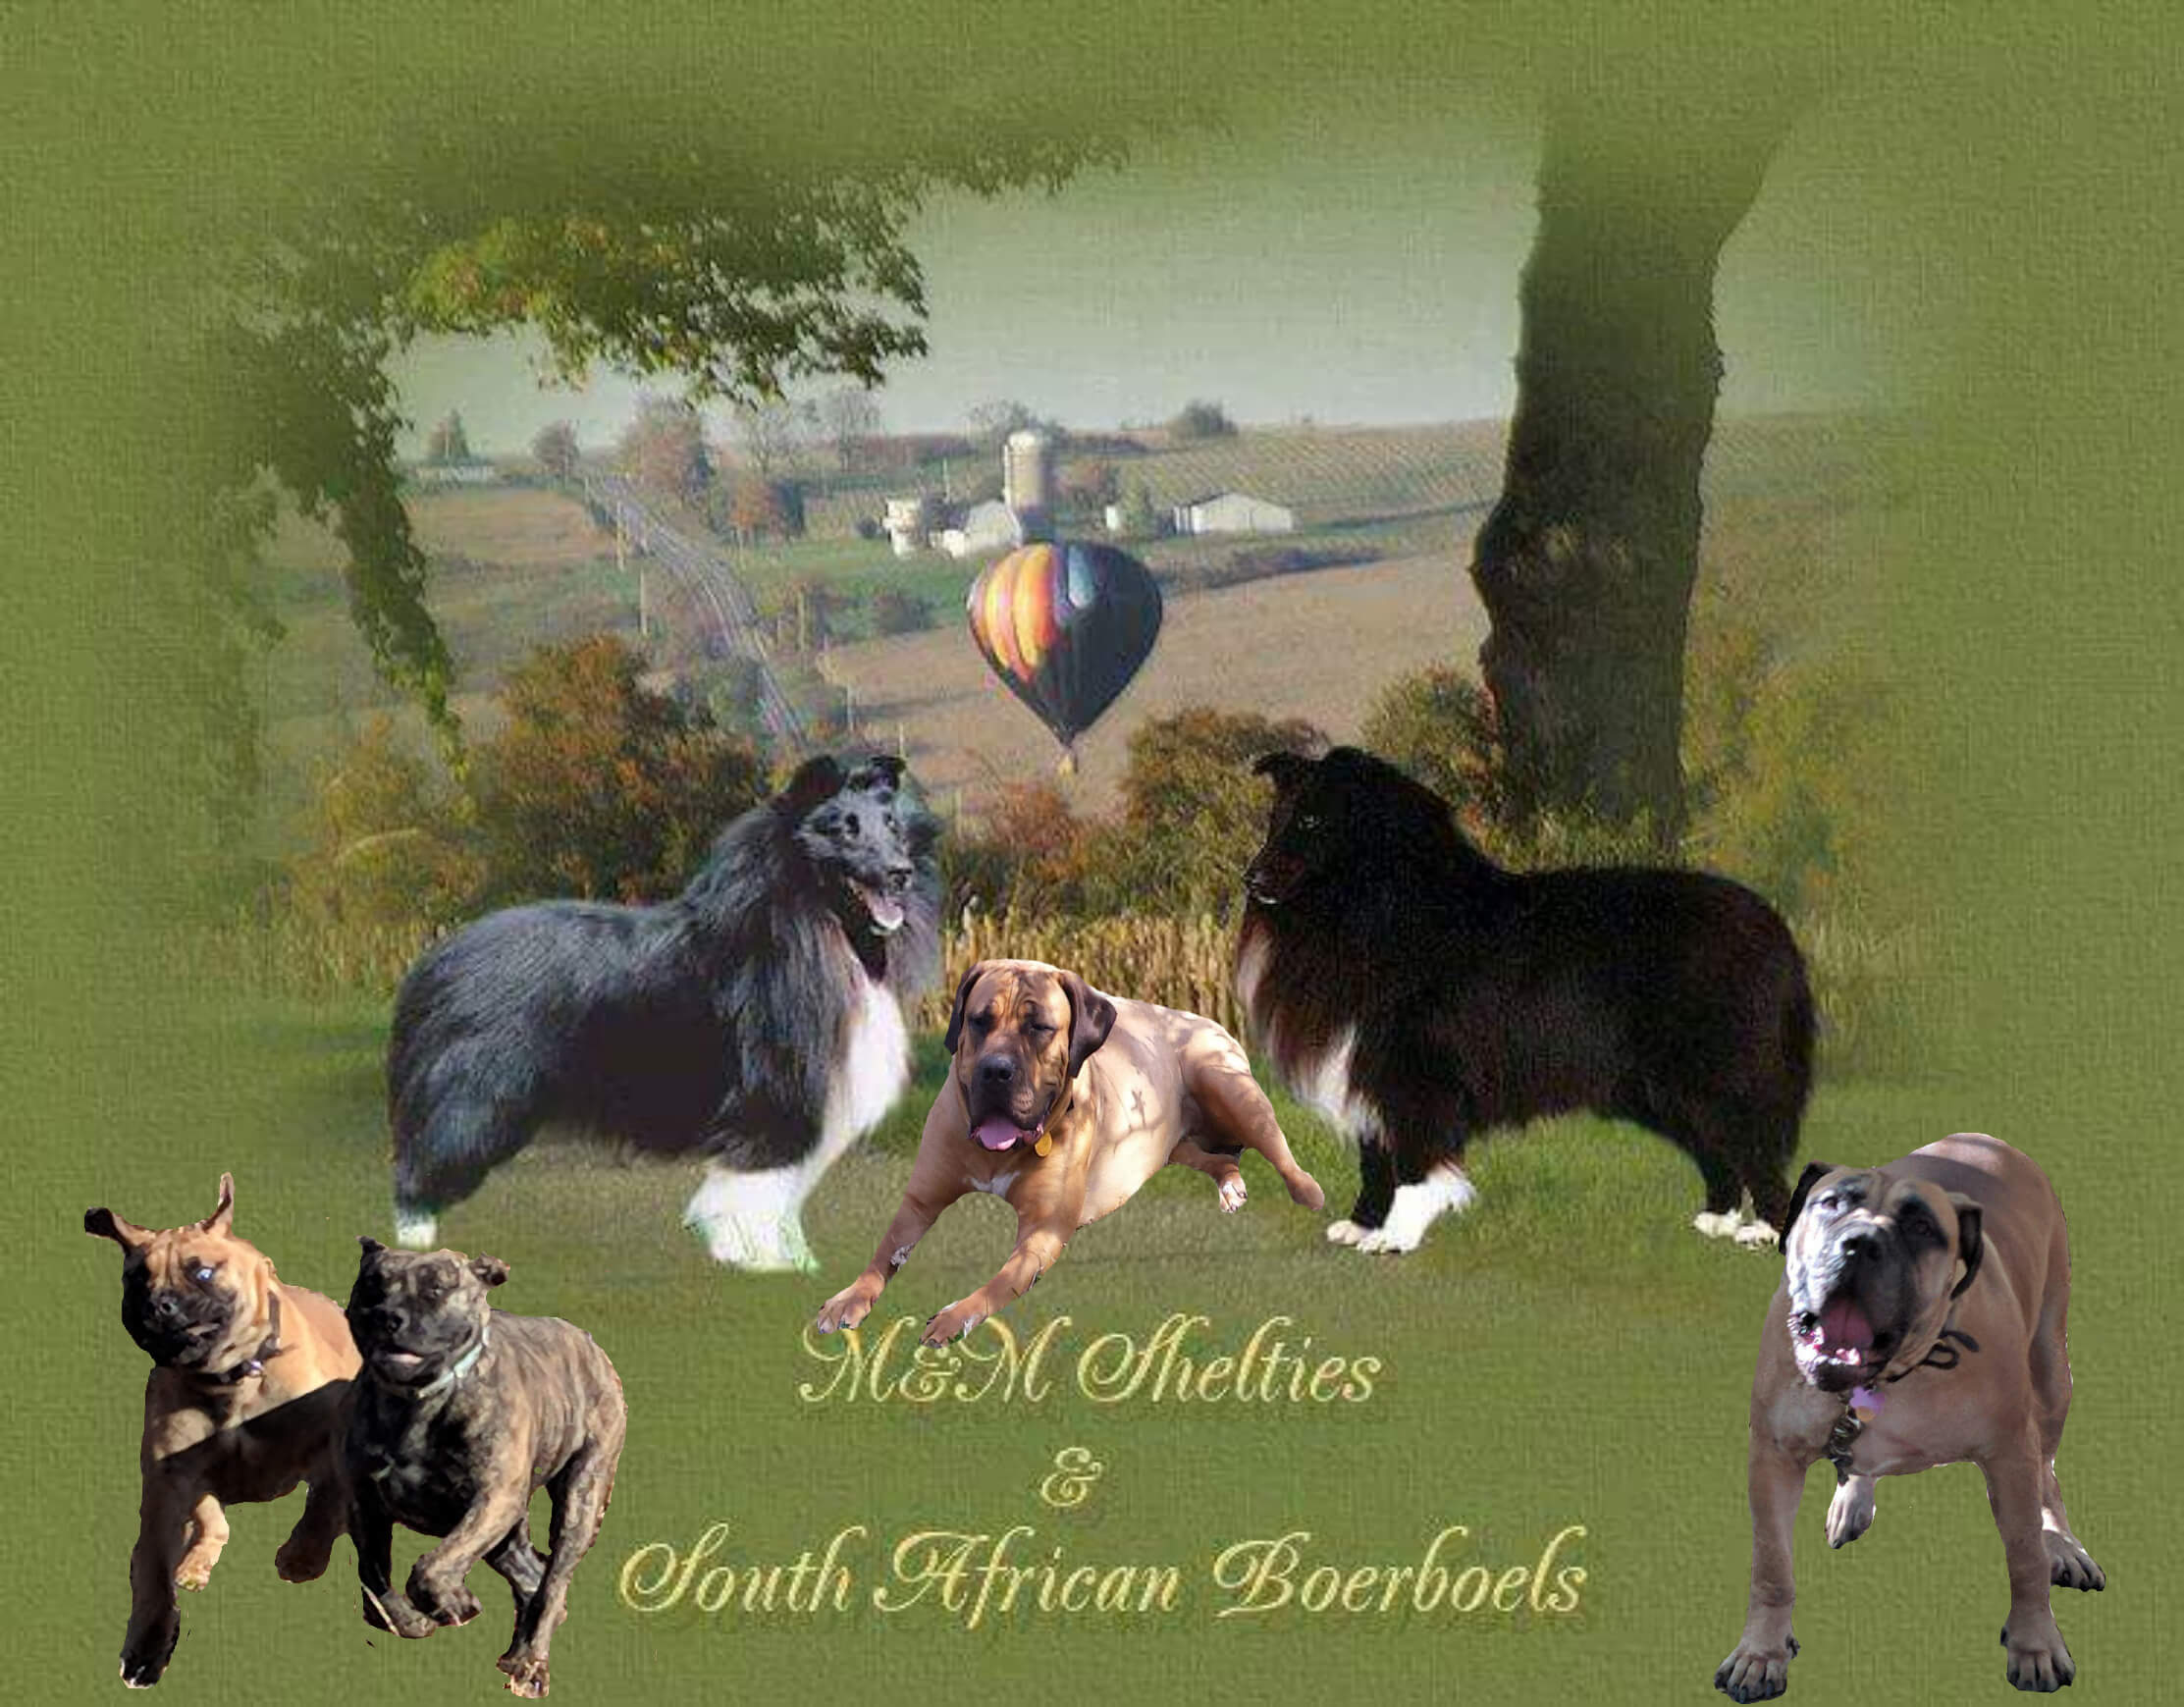 M&M Shelties and South African Boerboels